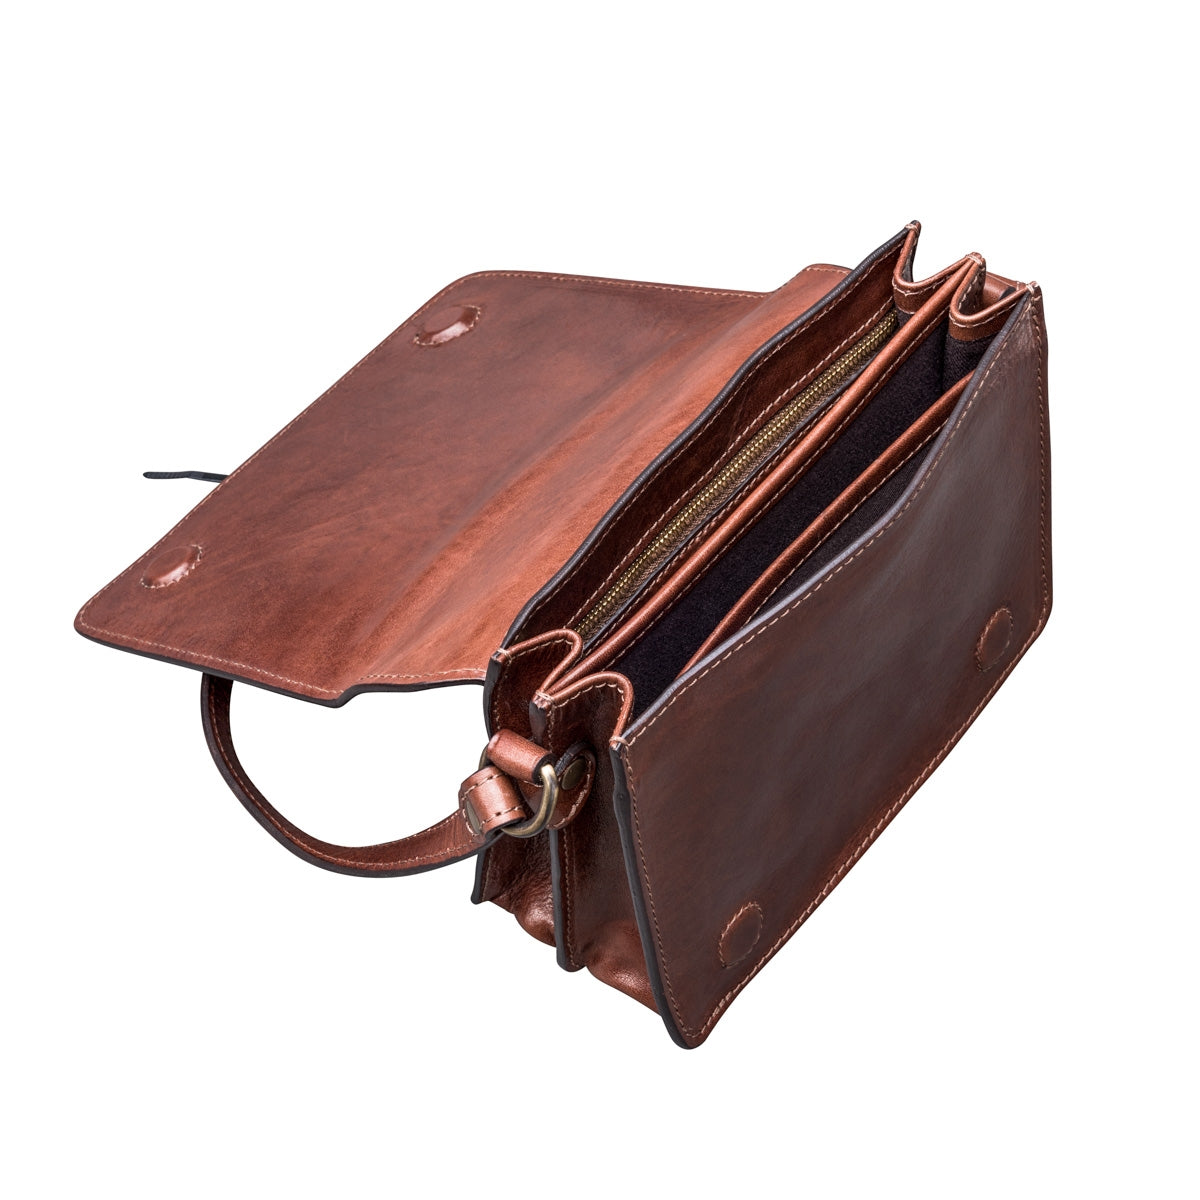 Image 5 of the 'Lucca' Small Chestnut Veg-Tanned Leather Handbag